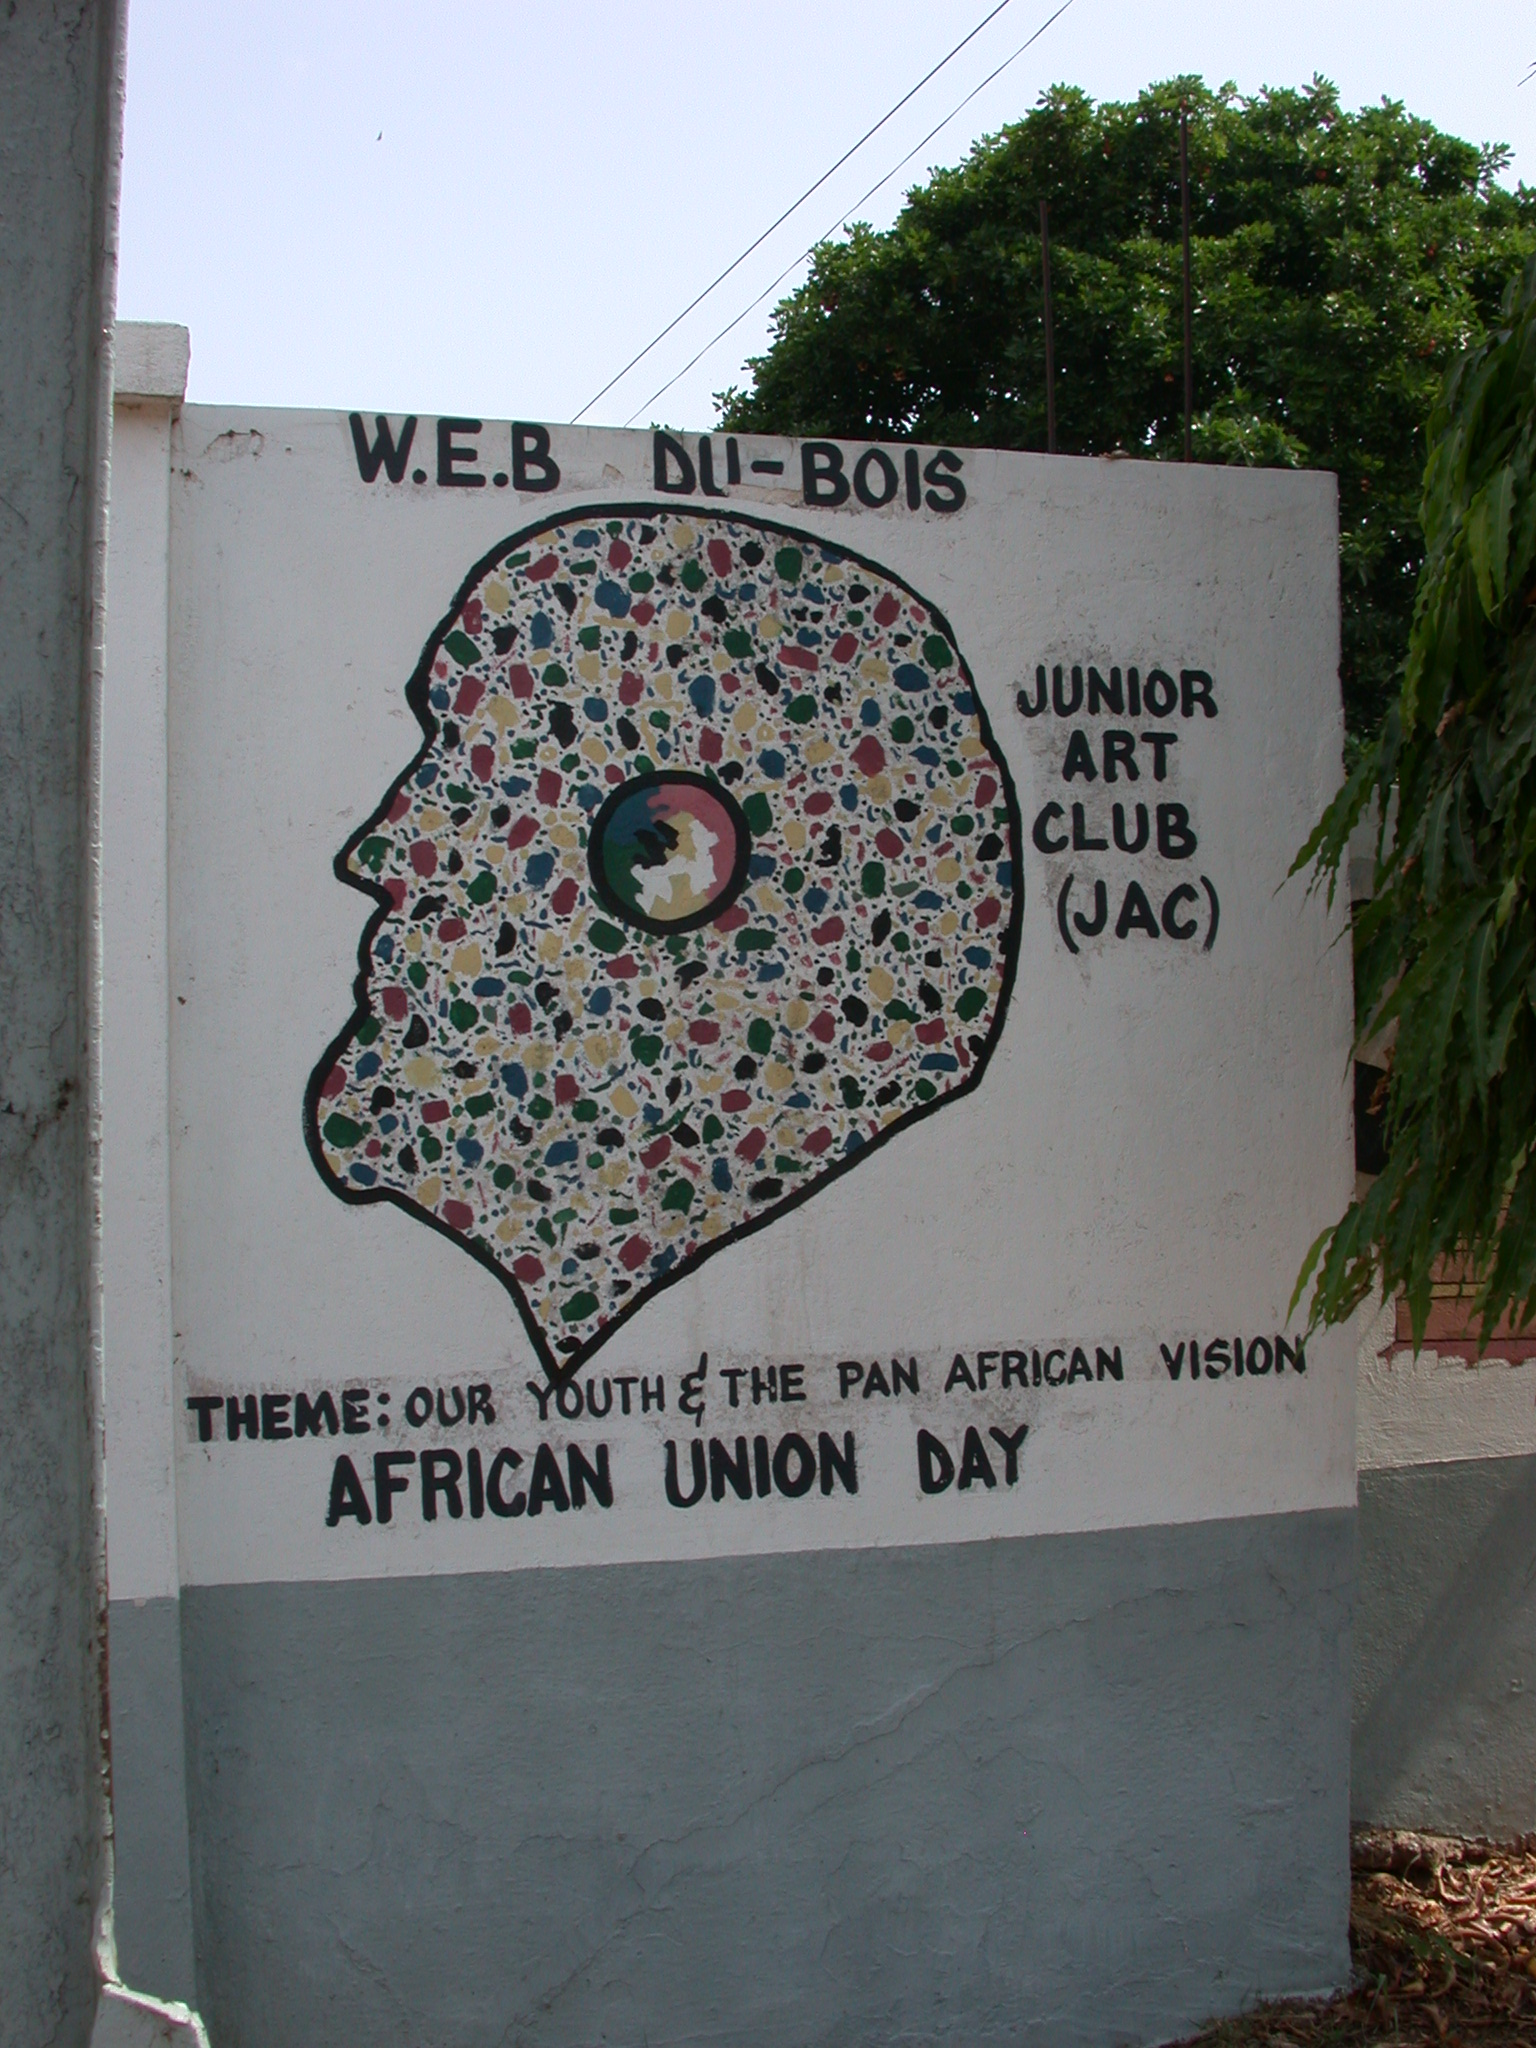 Sign From WEB DuBois Junior Art Club Commemorating African Union Day, WEB DuBois Memorial Centre for Pan African Culture, Accra, Ghana